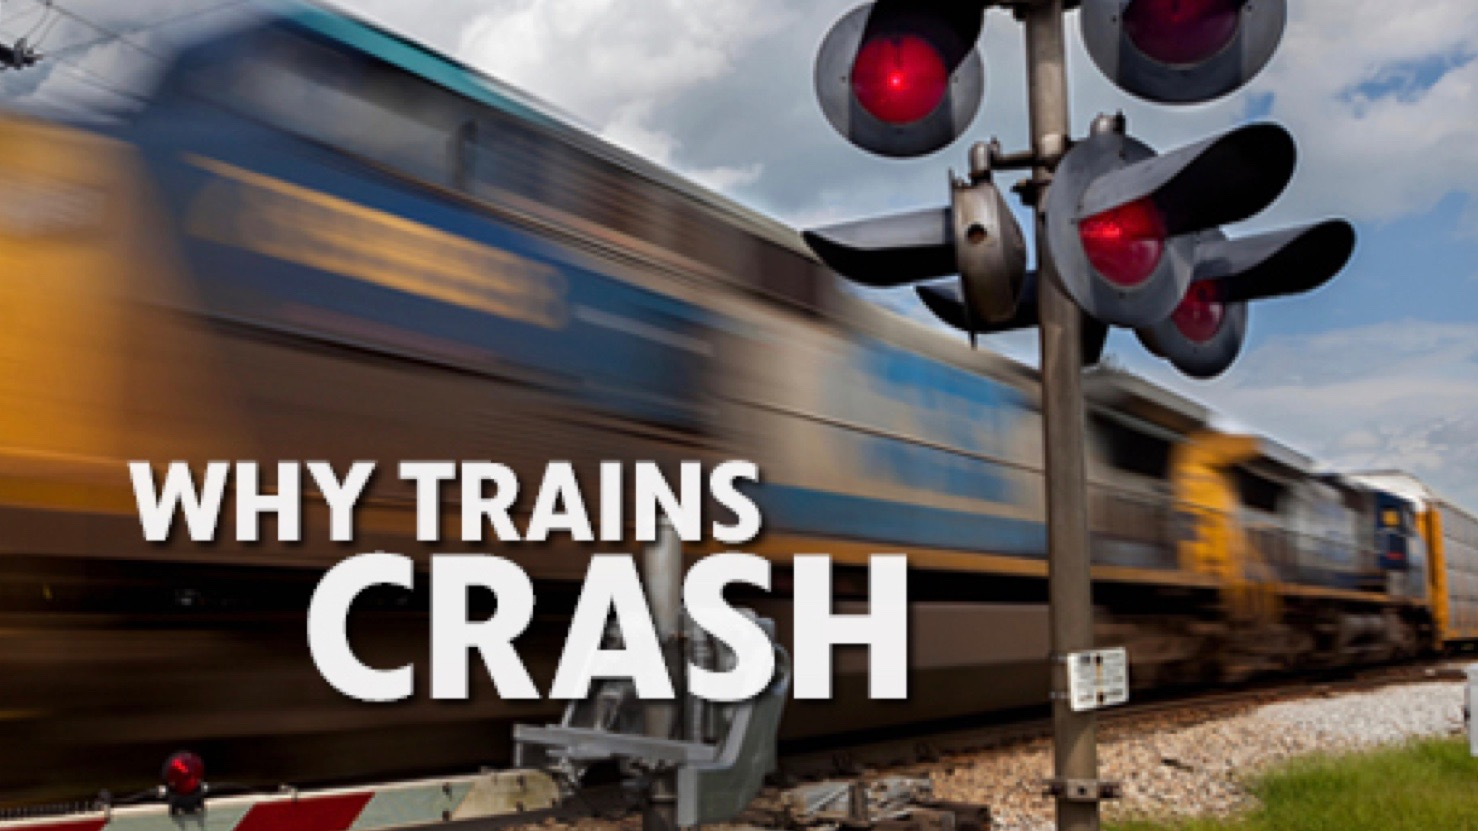 Nova: Why Trains Crash - Wednesday, February 22 - 9 p.m.